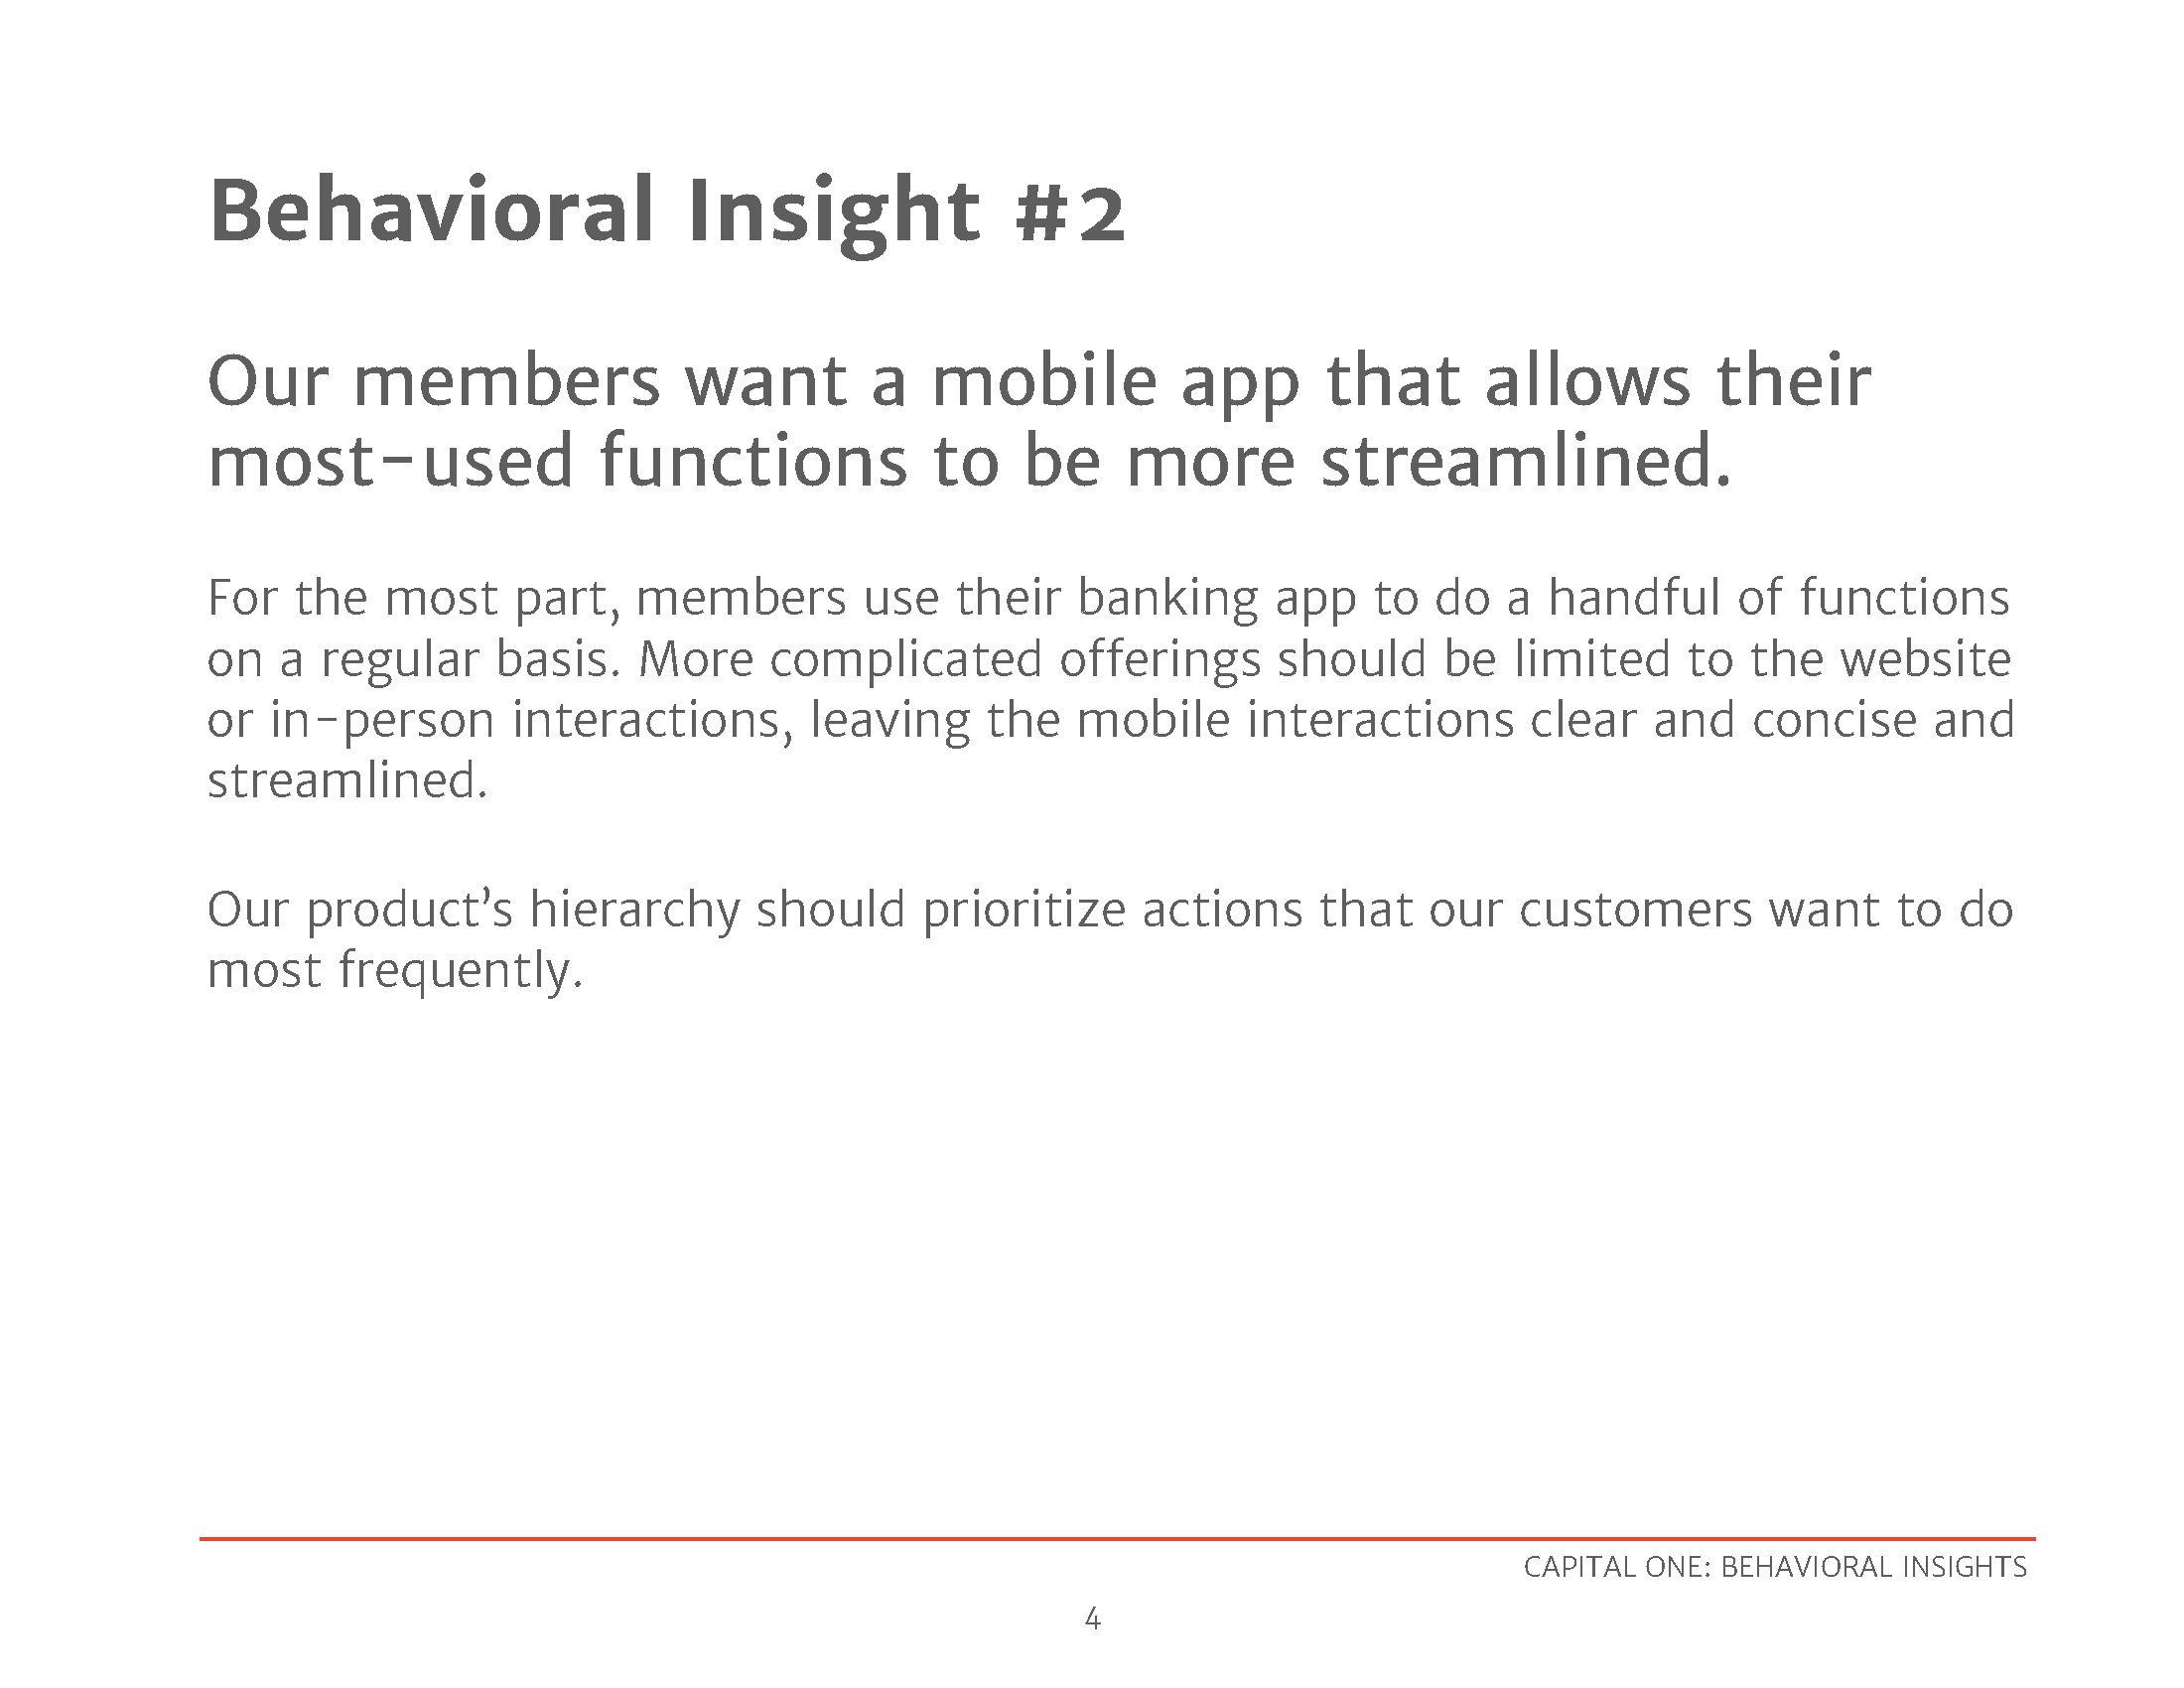 IDSE401_Assignment3_StrategyBrief_JF_Page_04.png